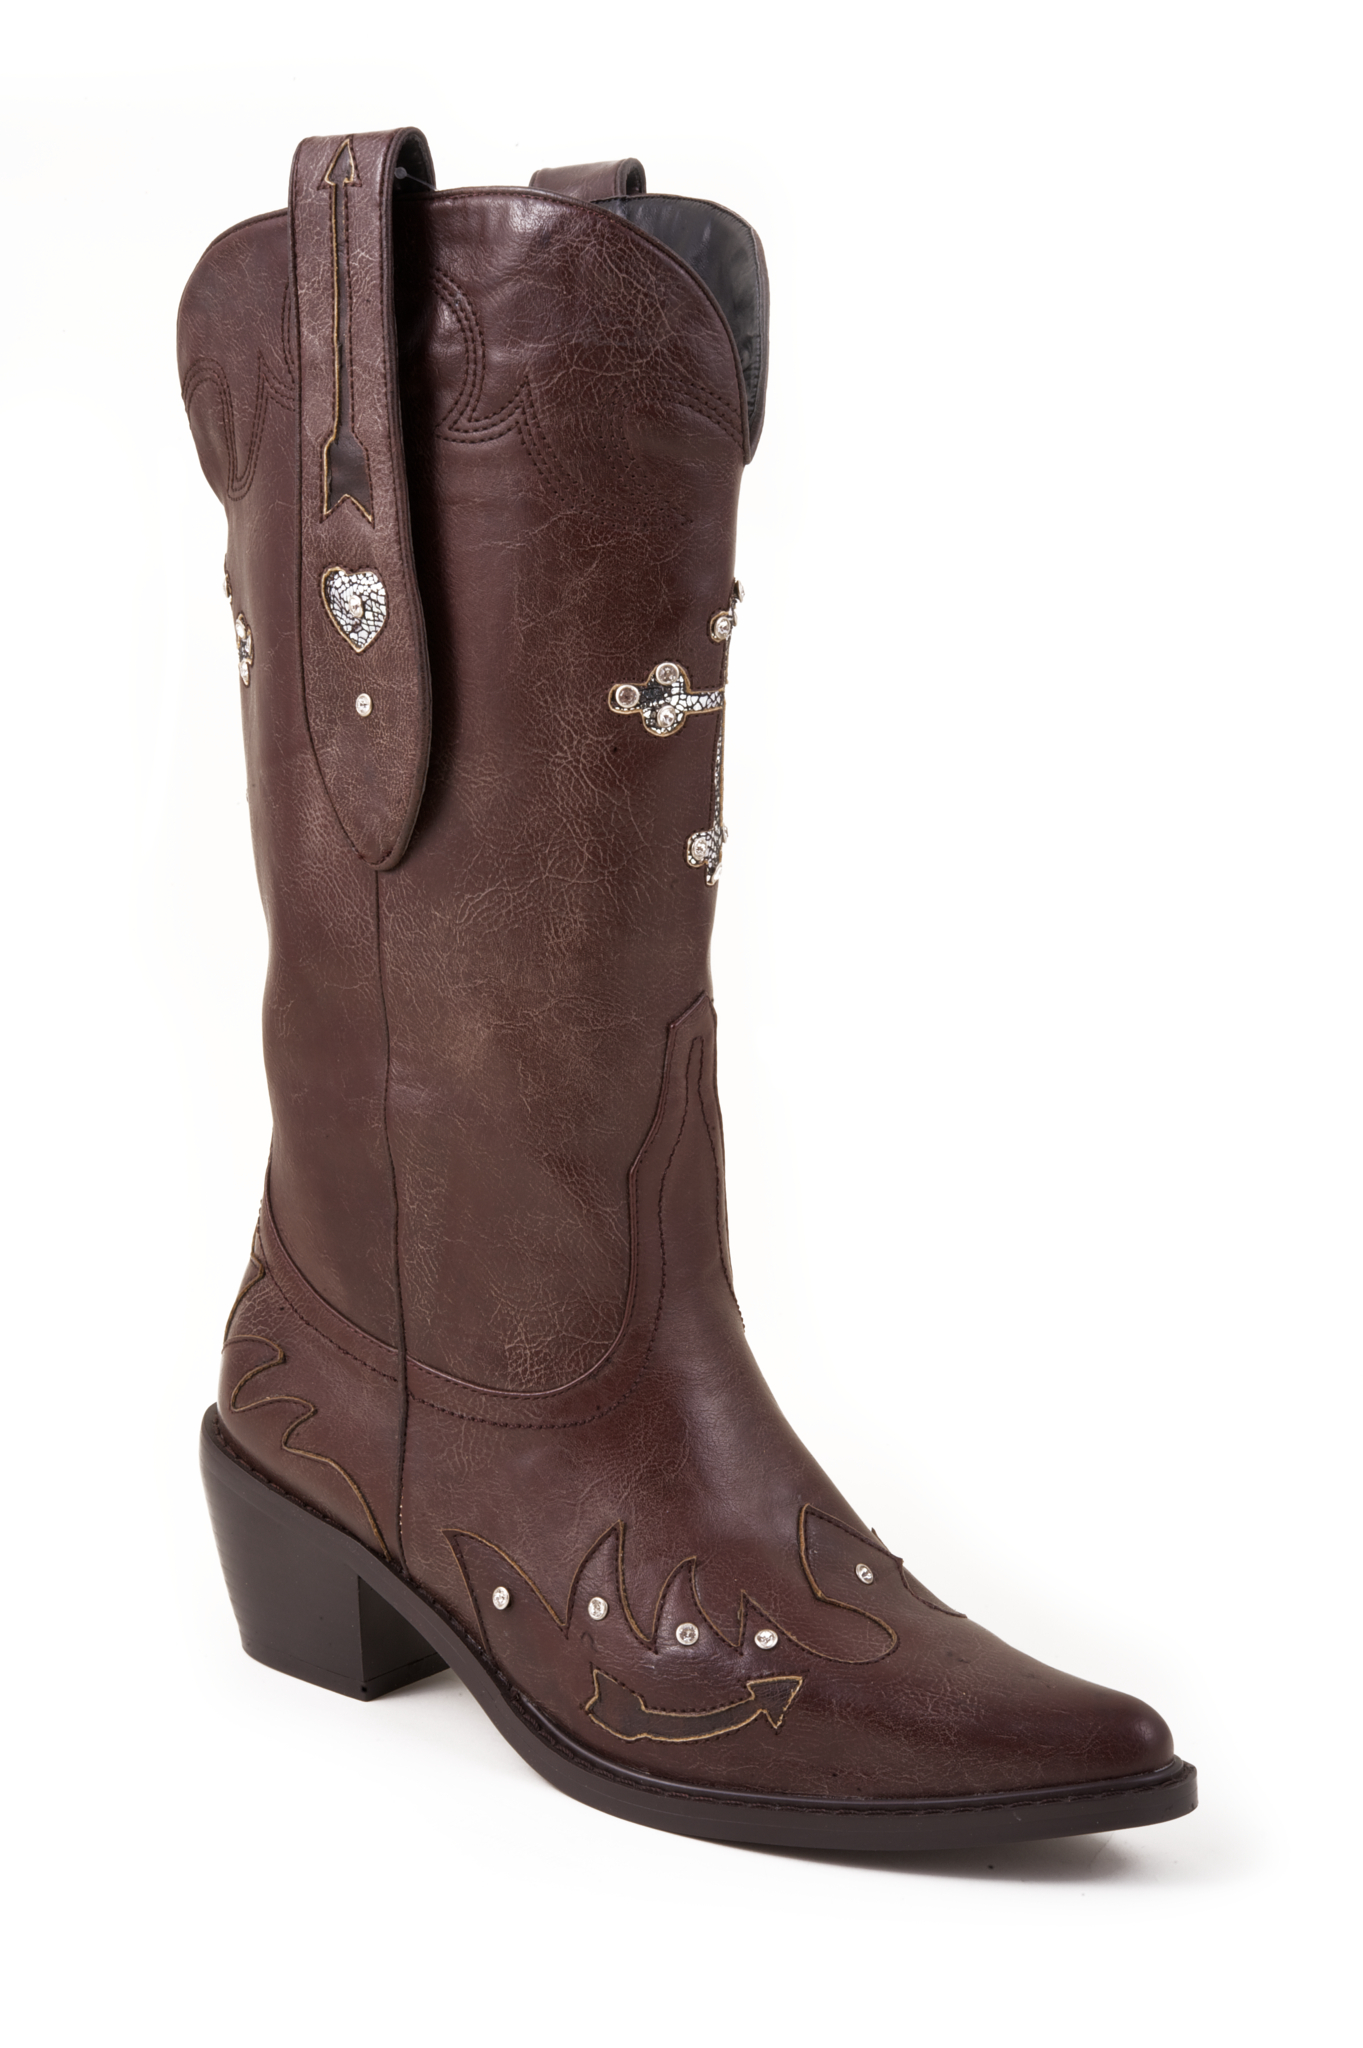 Excellent Roper Women39s Glitter Western Boots I WANT THESE BOOTS